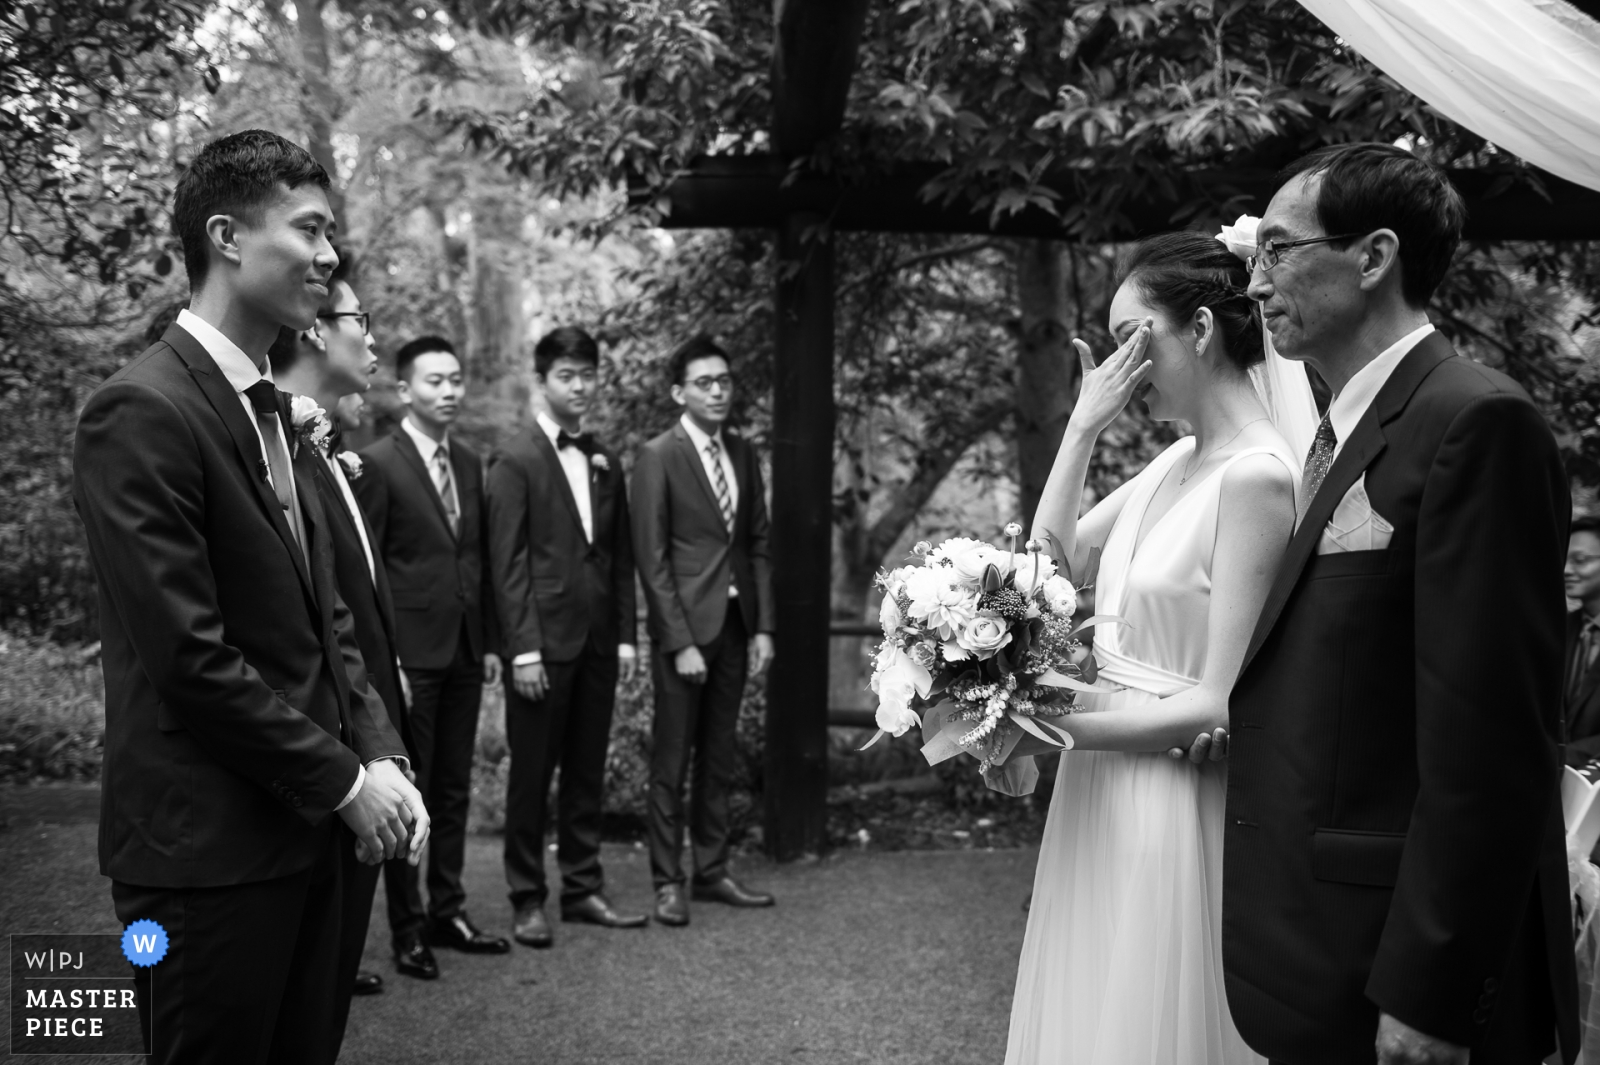 The bride father gave the daughter to the groom - Melbourne, Victoria, Australia Wedding Photography -  | Victoria-AU